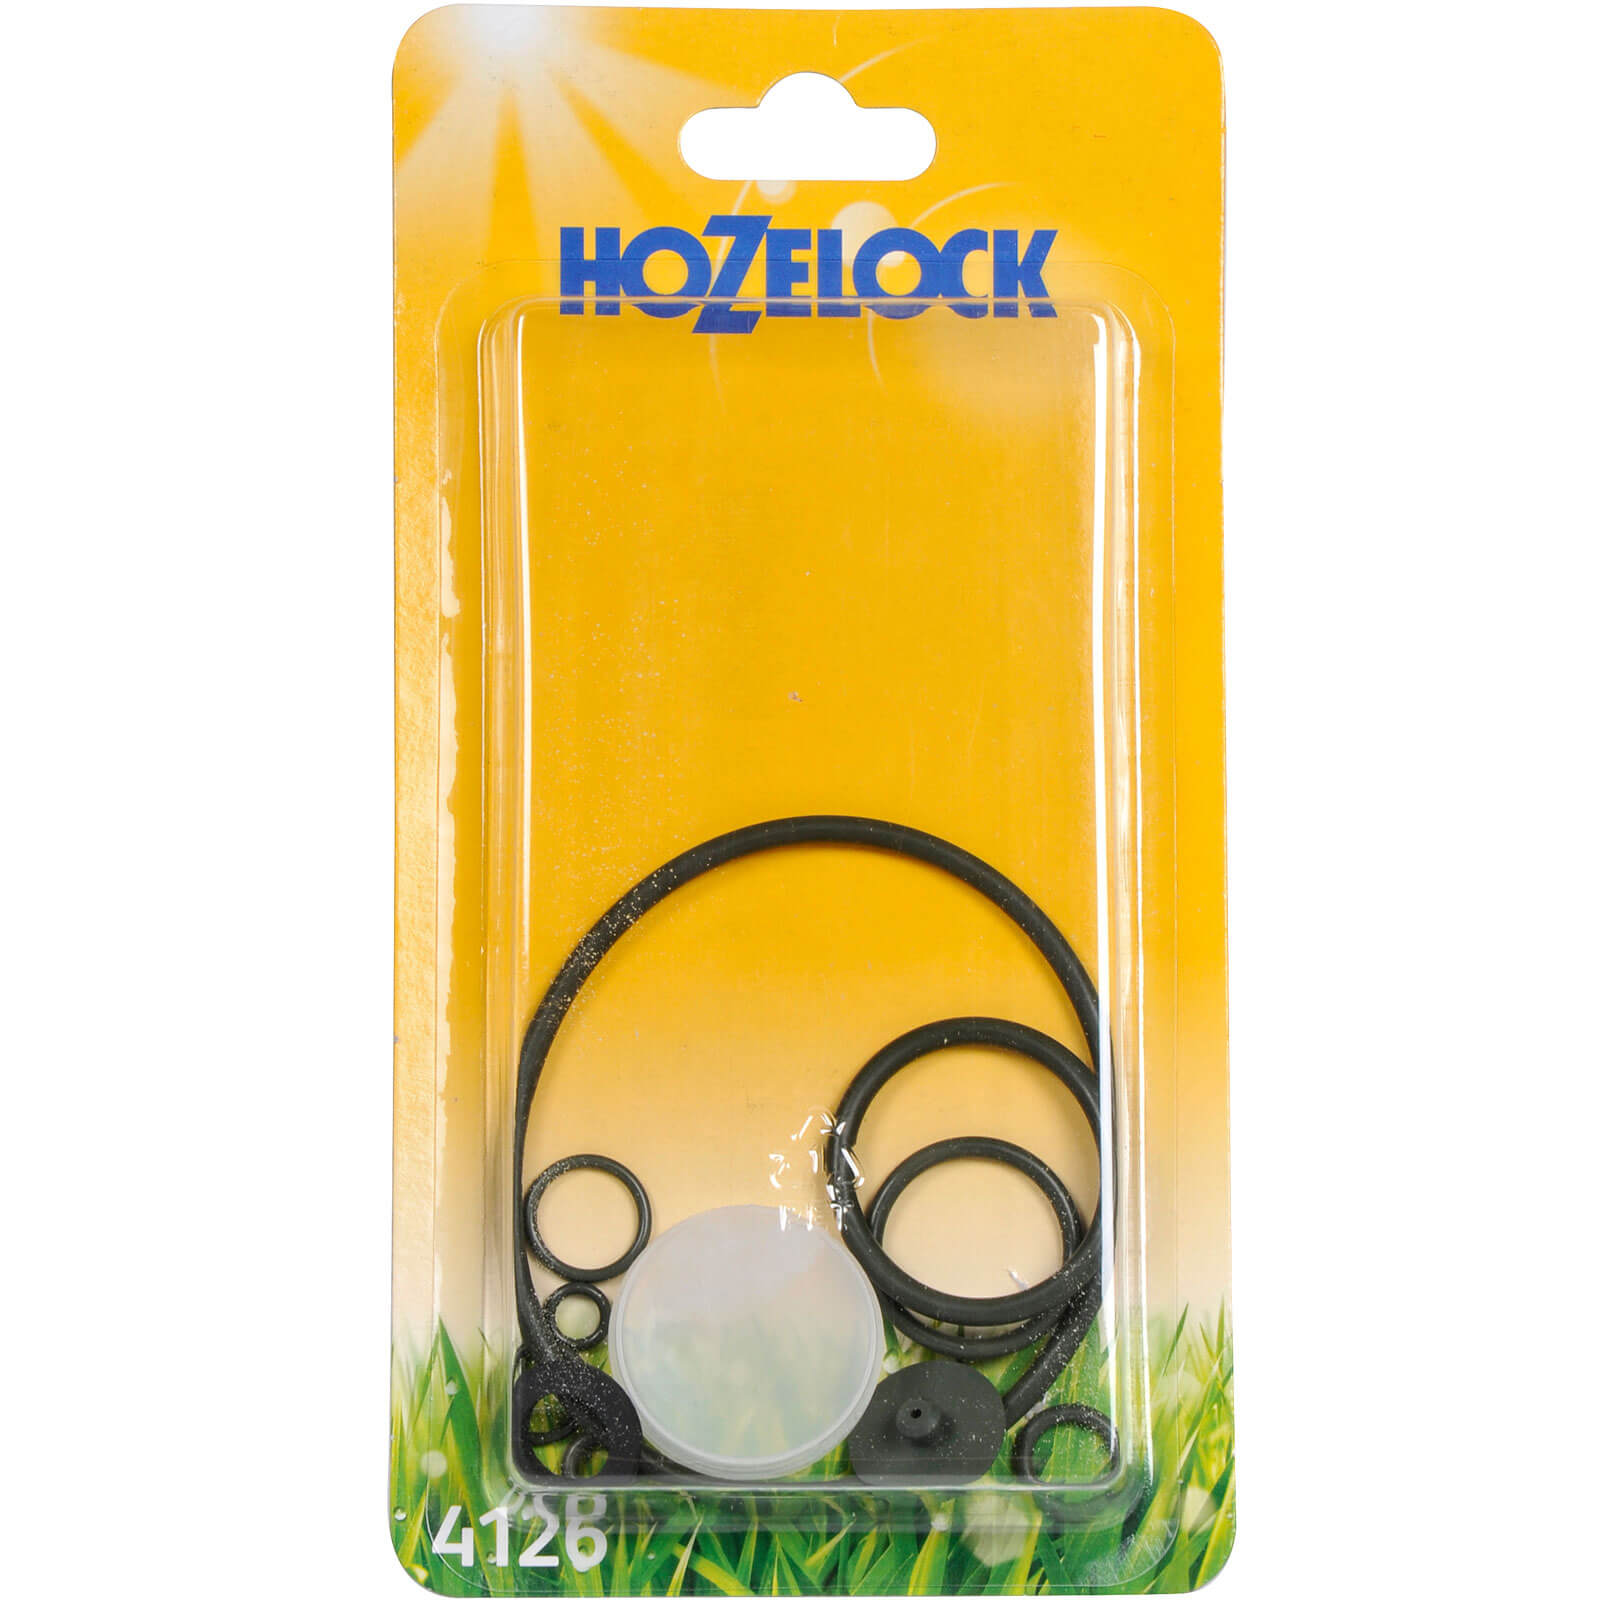 Image of Hozelock Annual Service Kit for Pro & Viton Pressure Sprayers